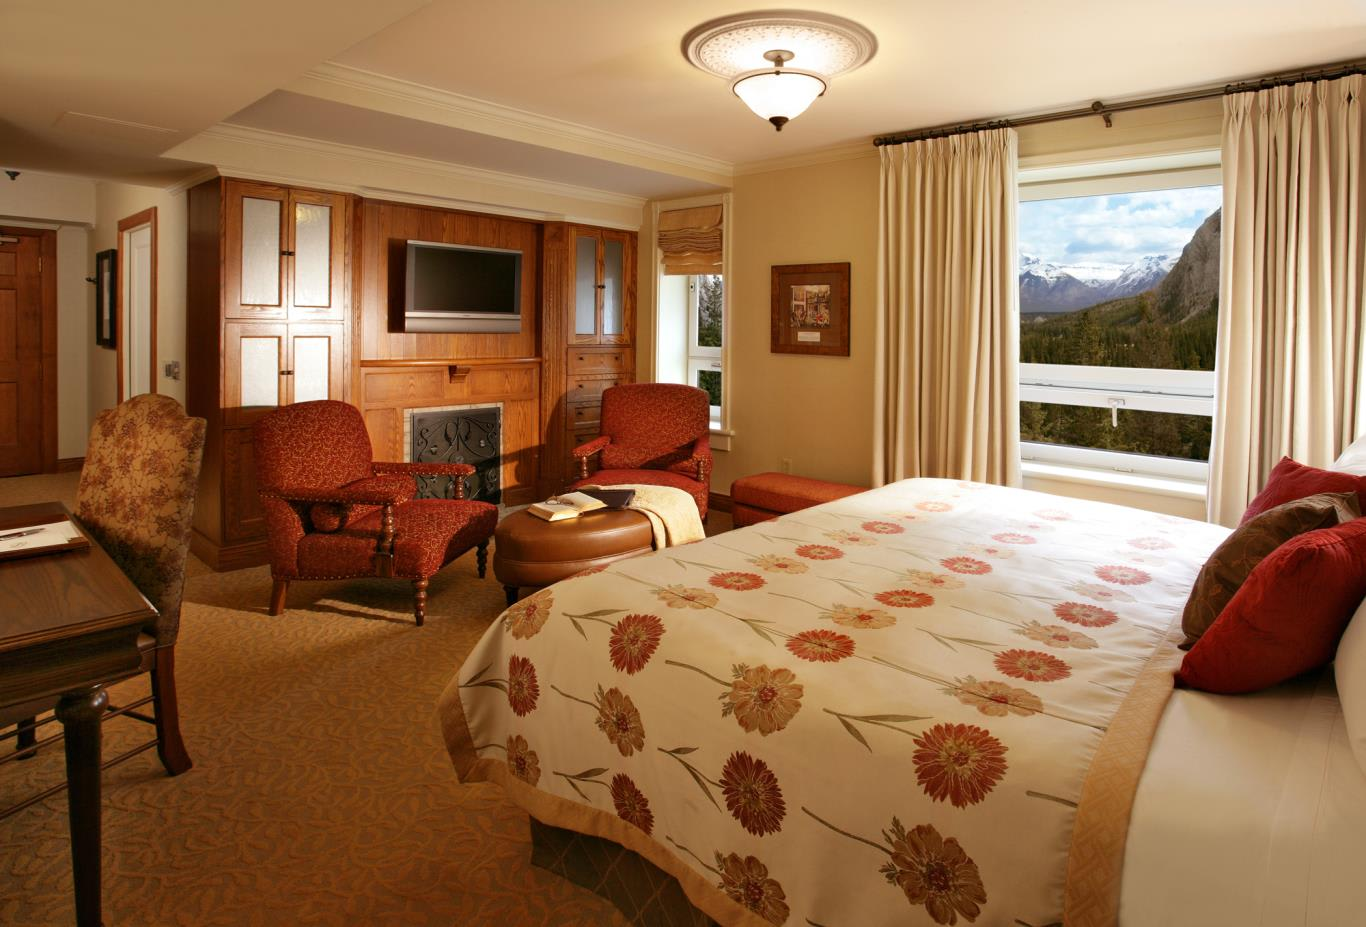 Stanley Thompson Deluxe Mountain View Room